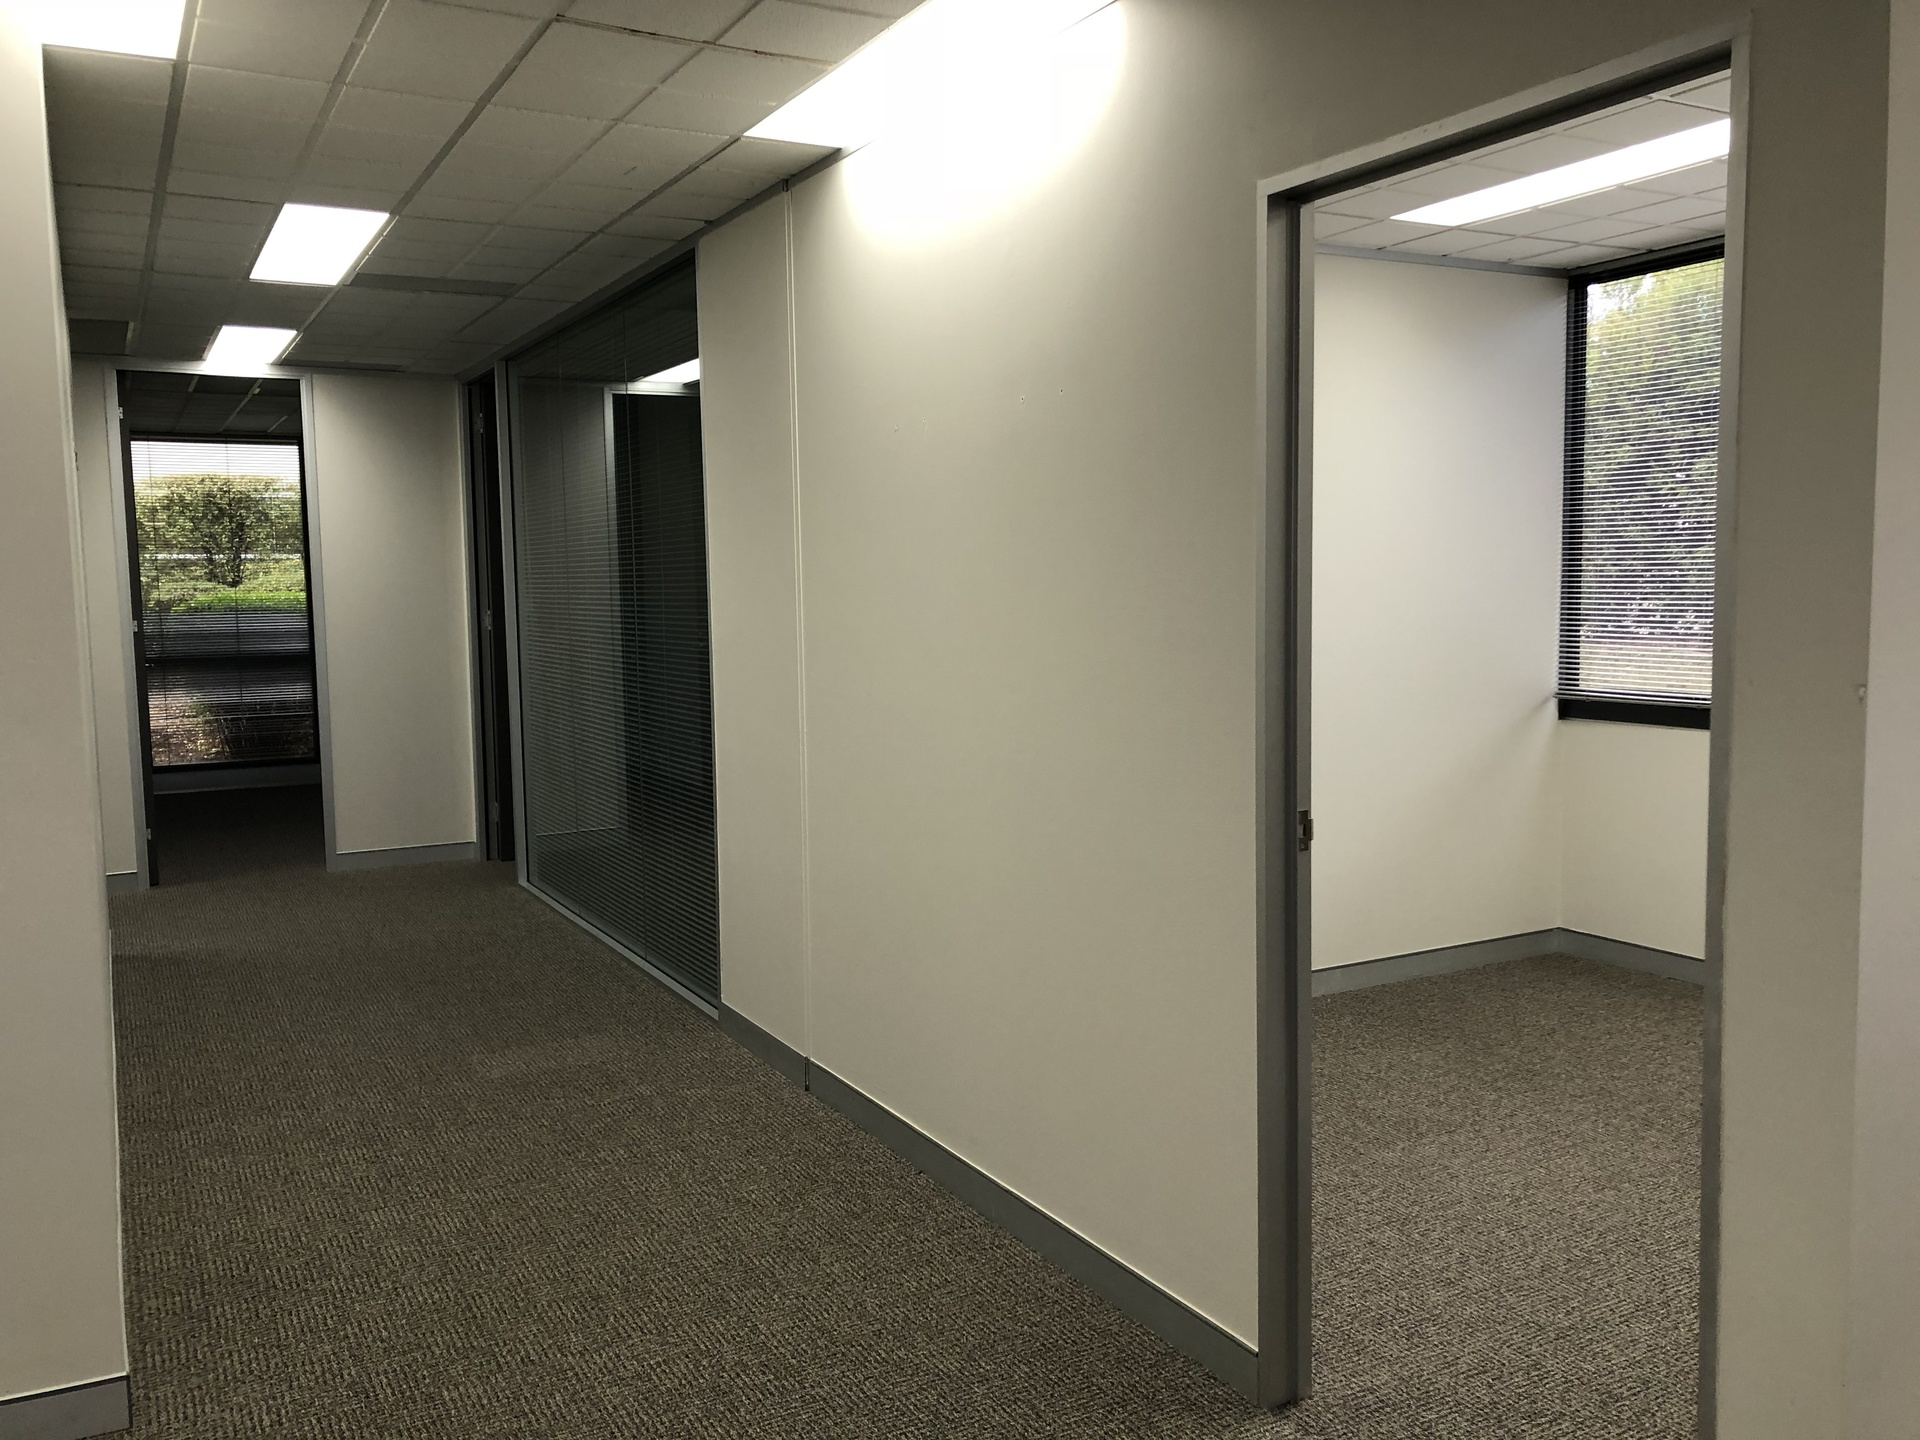 GROUND FLOOR OFFICE SPACE LOCATED IN THE HEART OF DEAKIN